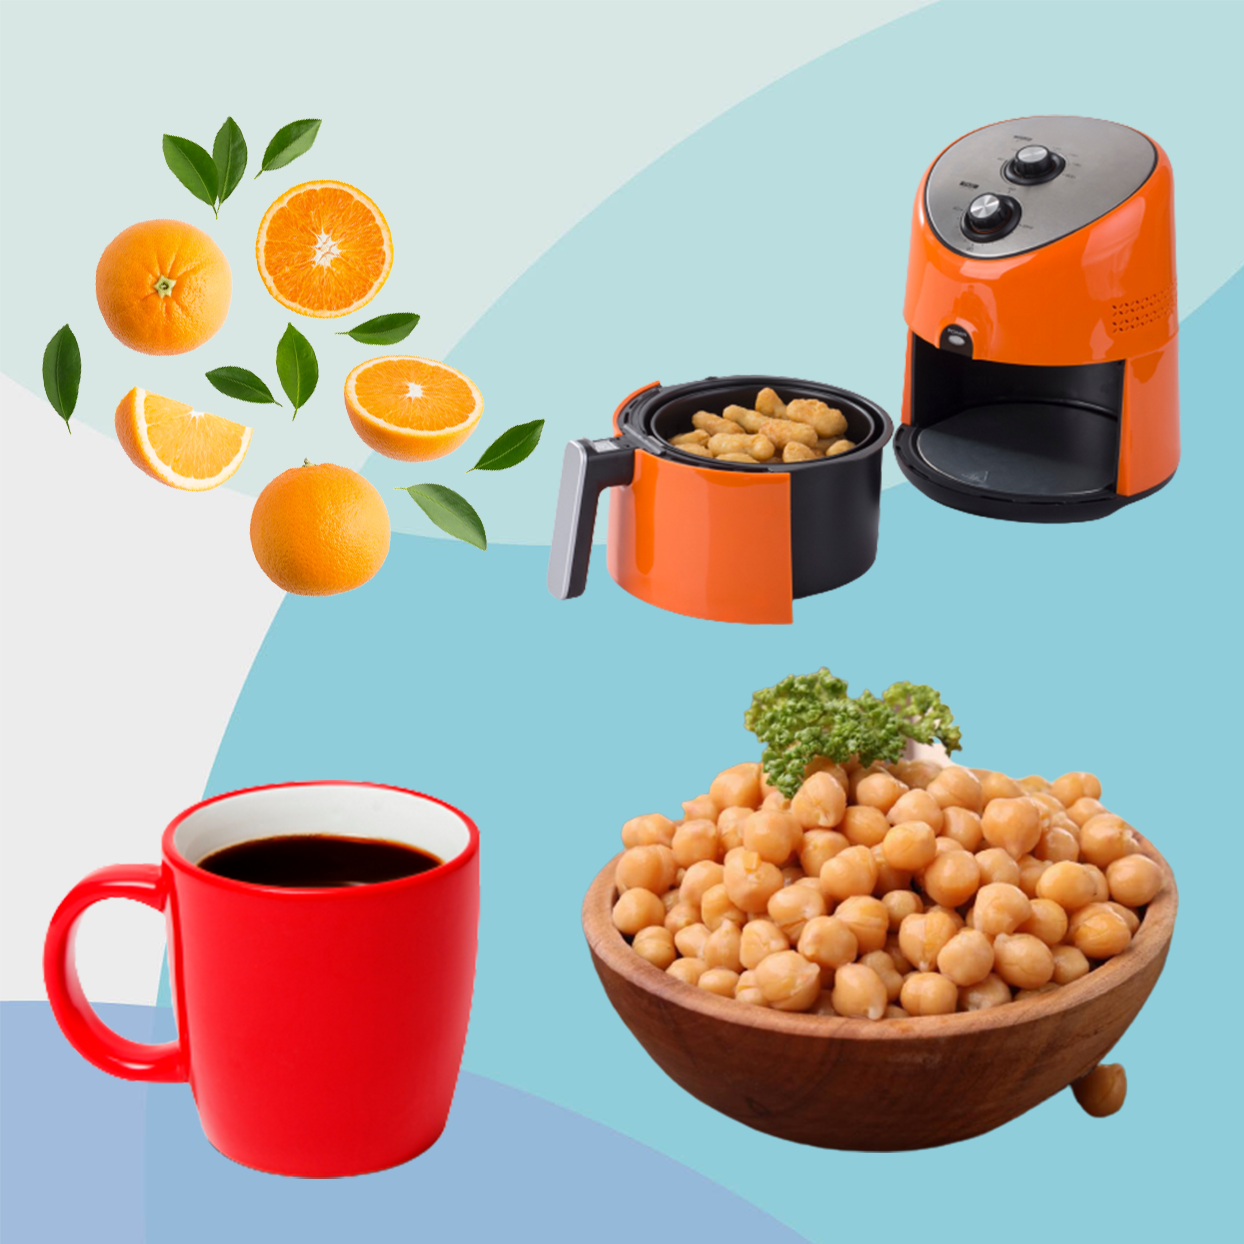 orange slices, air fryer, chickpeas and cup of chicory coffee on blue background